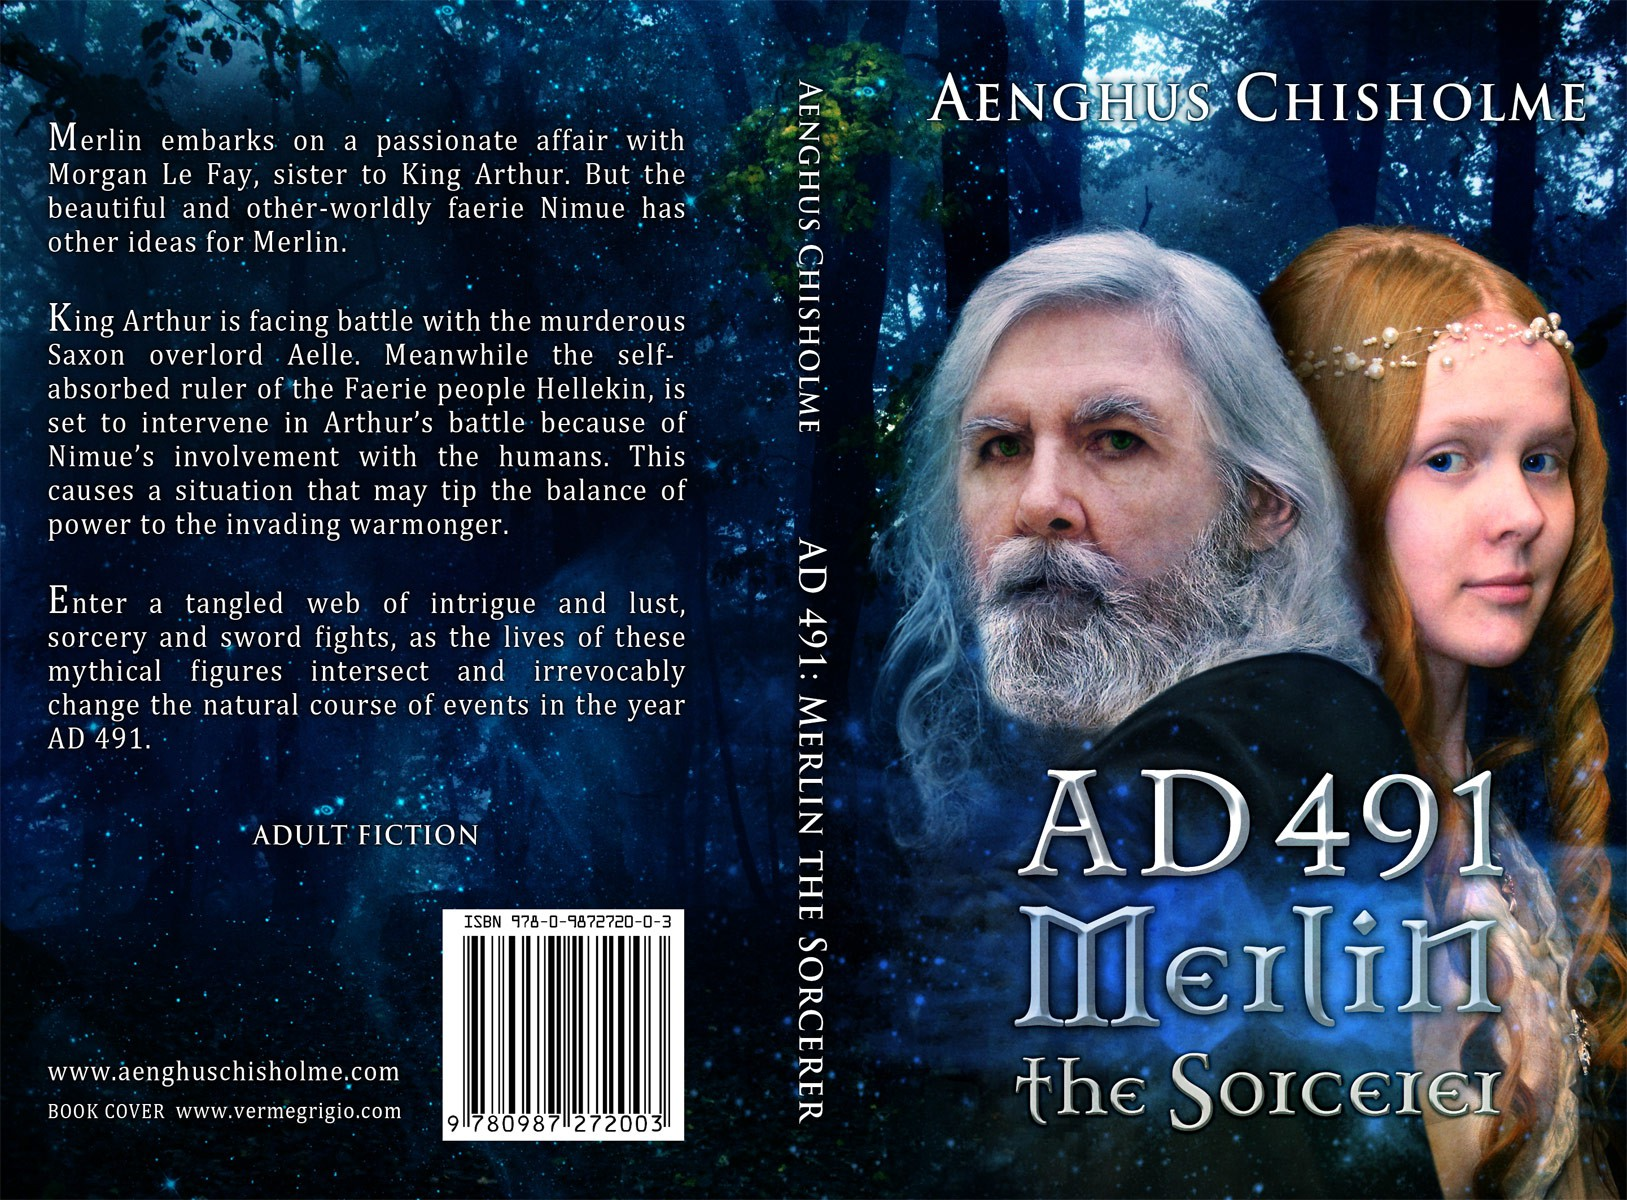 Create the next print or packaging design for Aenghus Chisholm Fiction Author